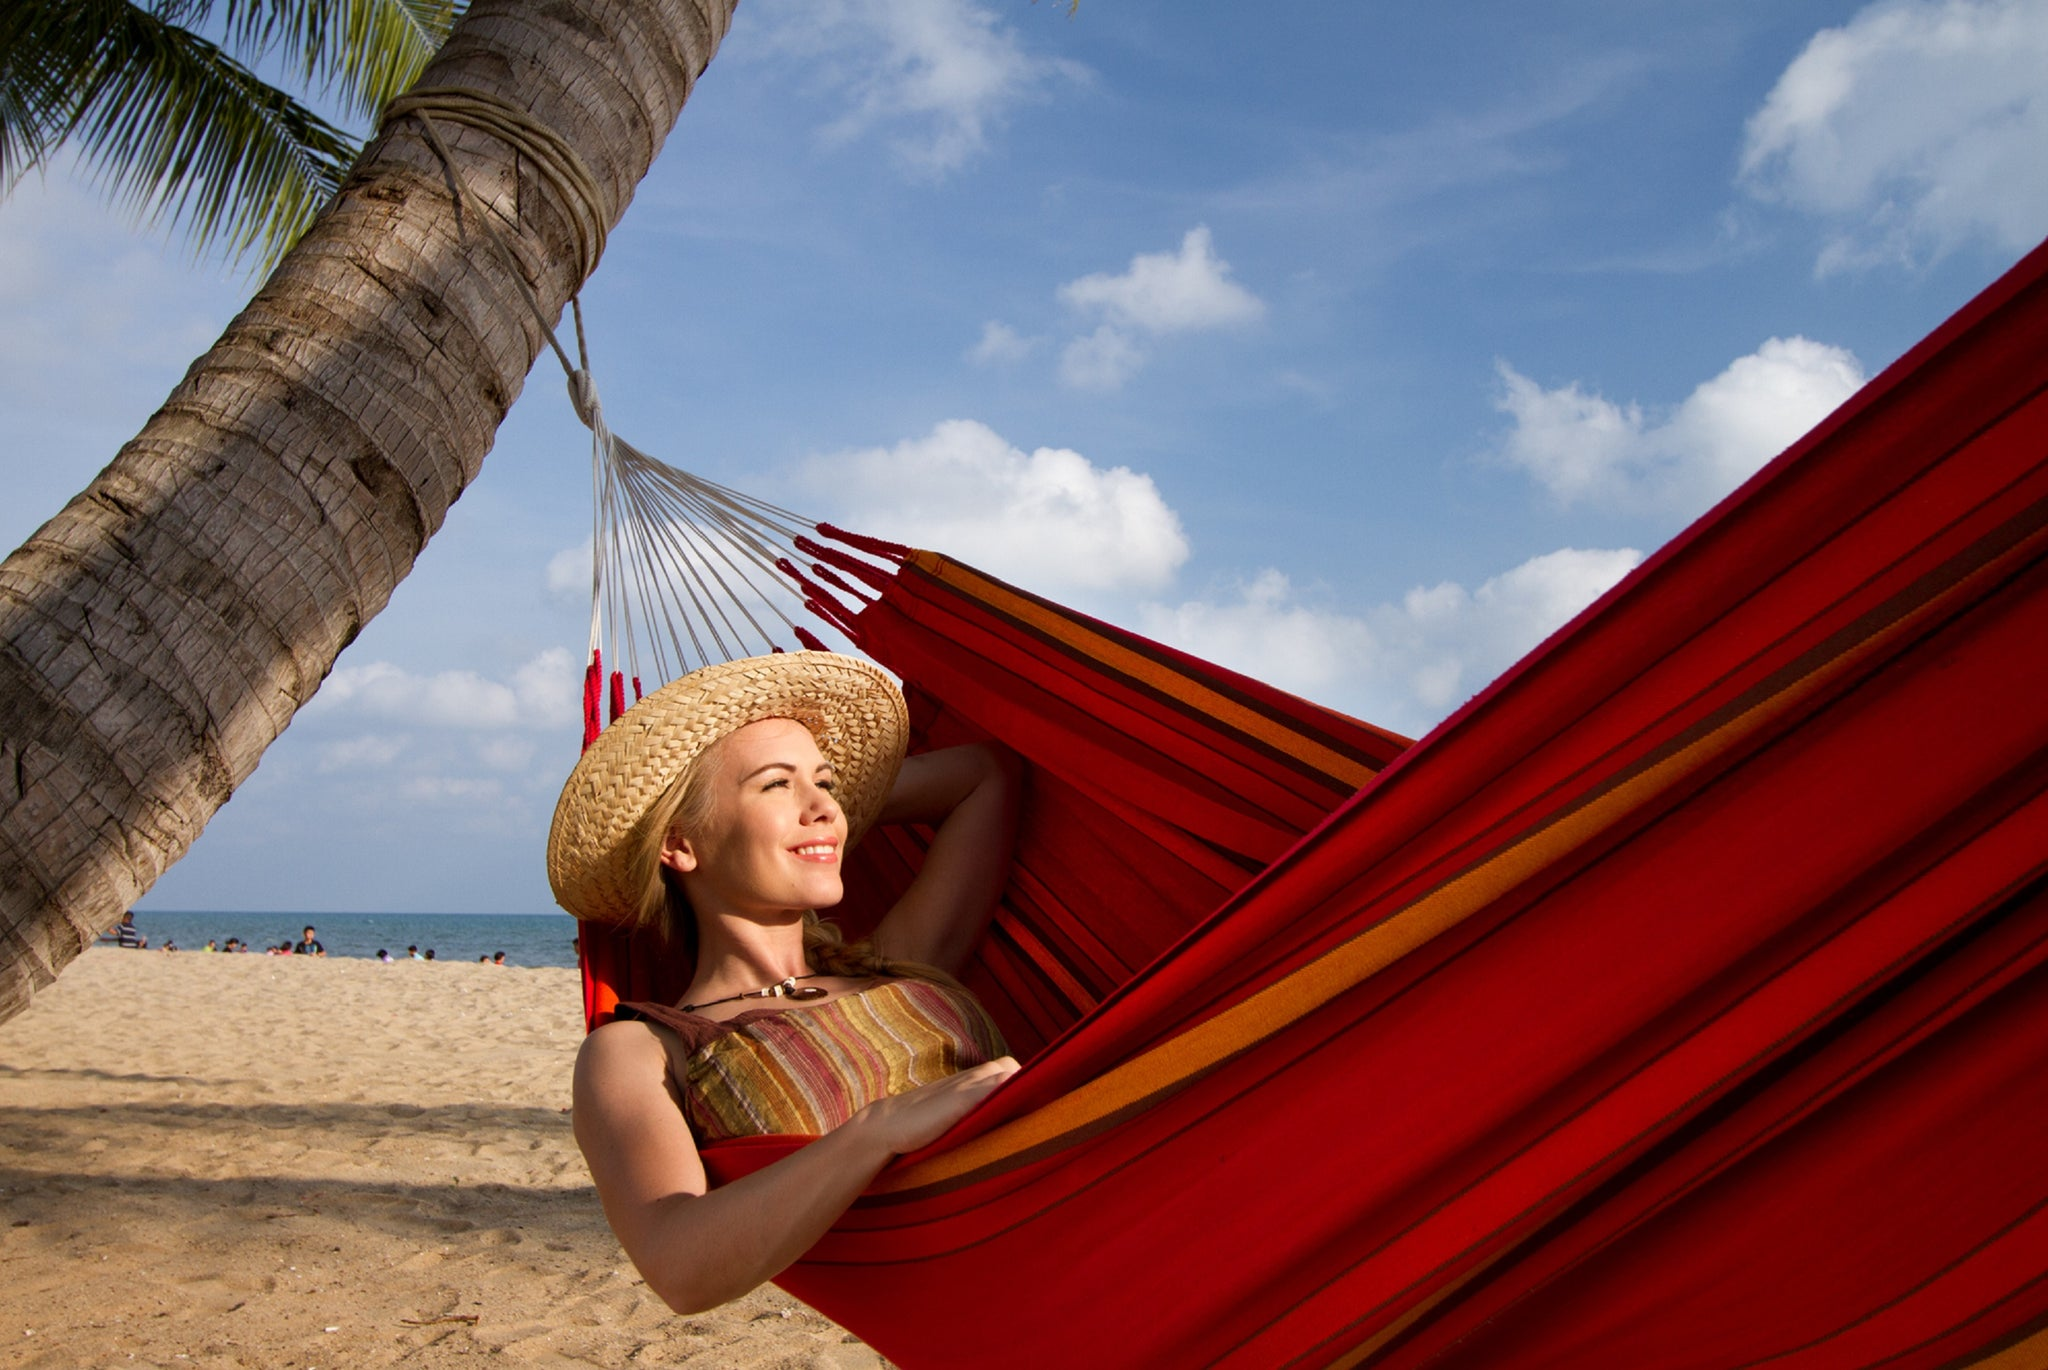 HANG IN A HAMMOCK FOR BETTER MENTAL HEALTH